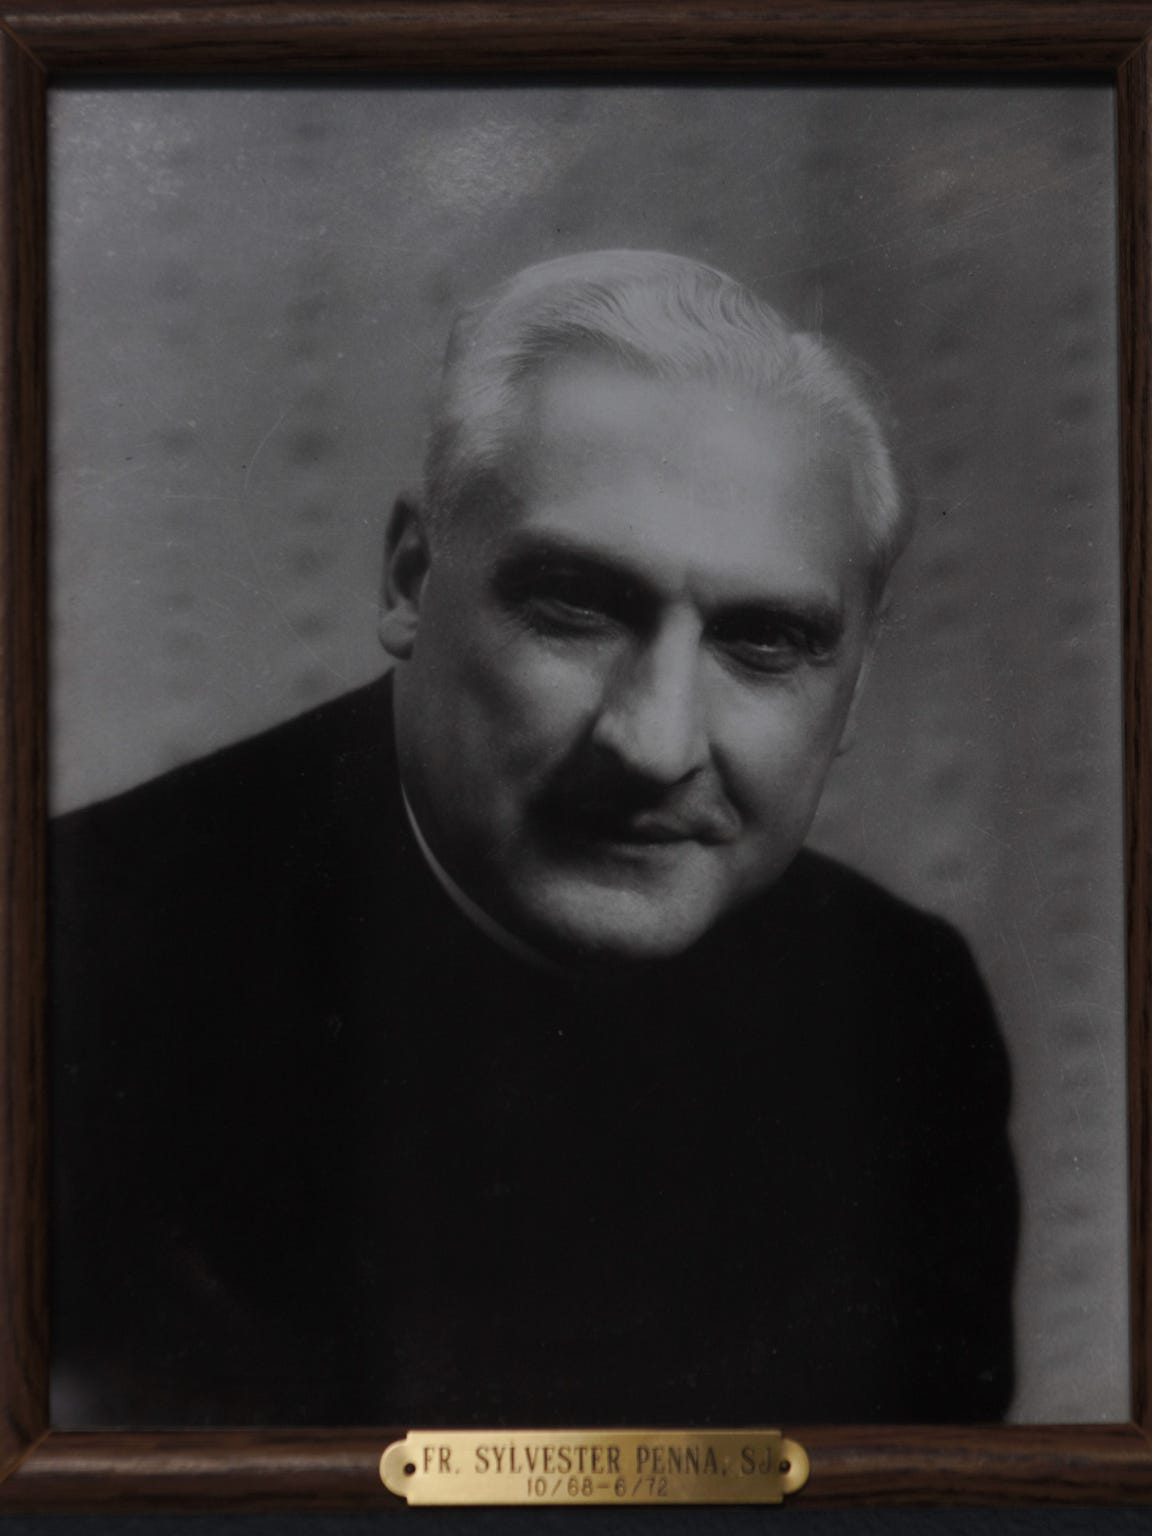 Father Sylvester Penna's portrait hangs among the other priests who have served the St. Thomas Catholic Church in Harlem.